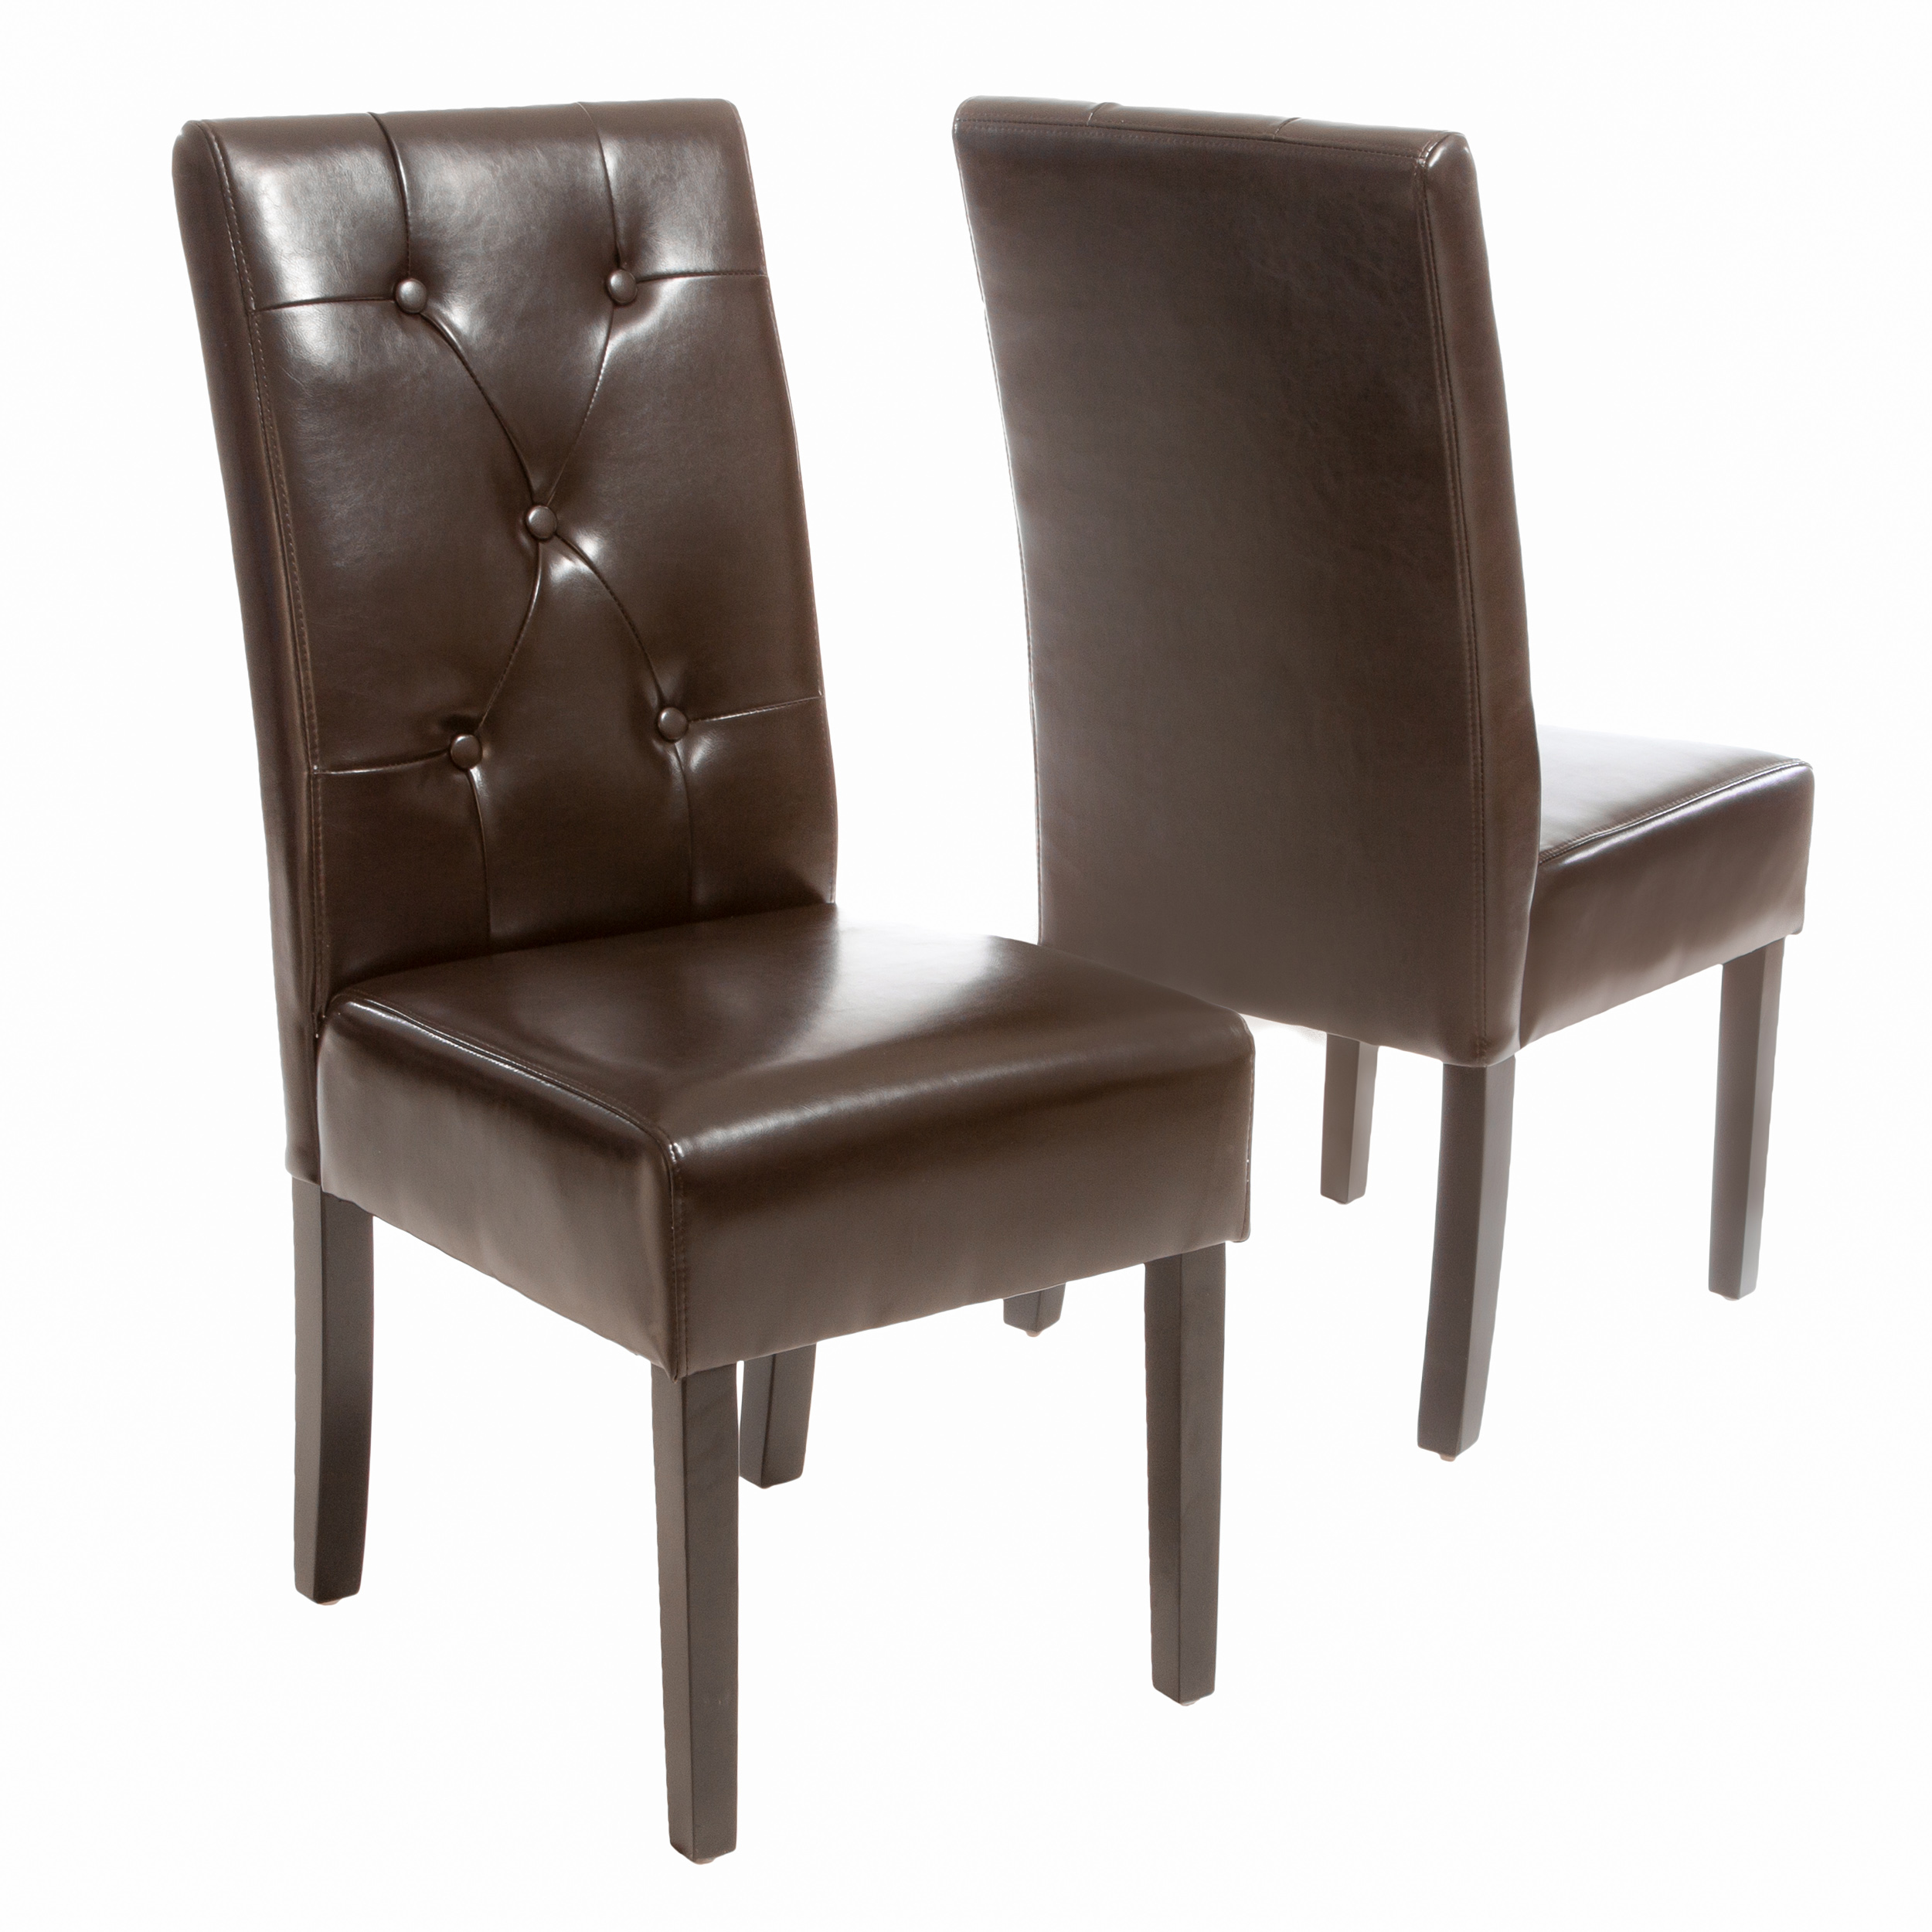 Tate Brown Bonded Leather Dining Chair (Set of 2)